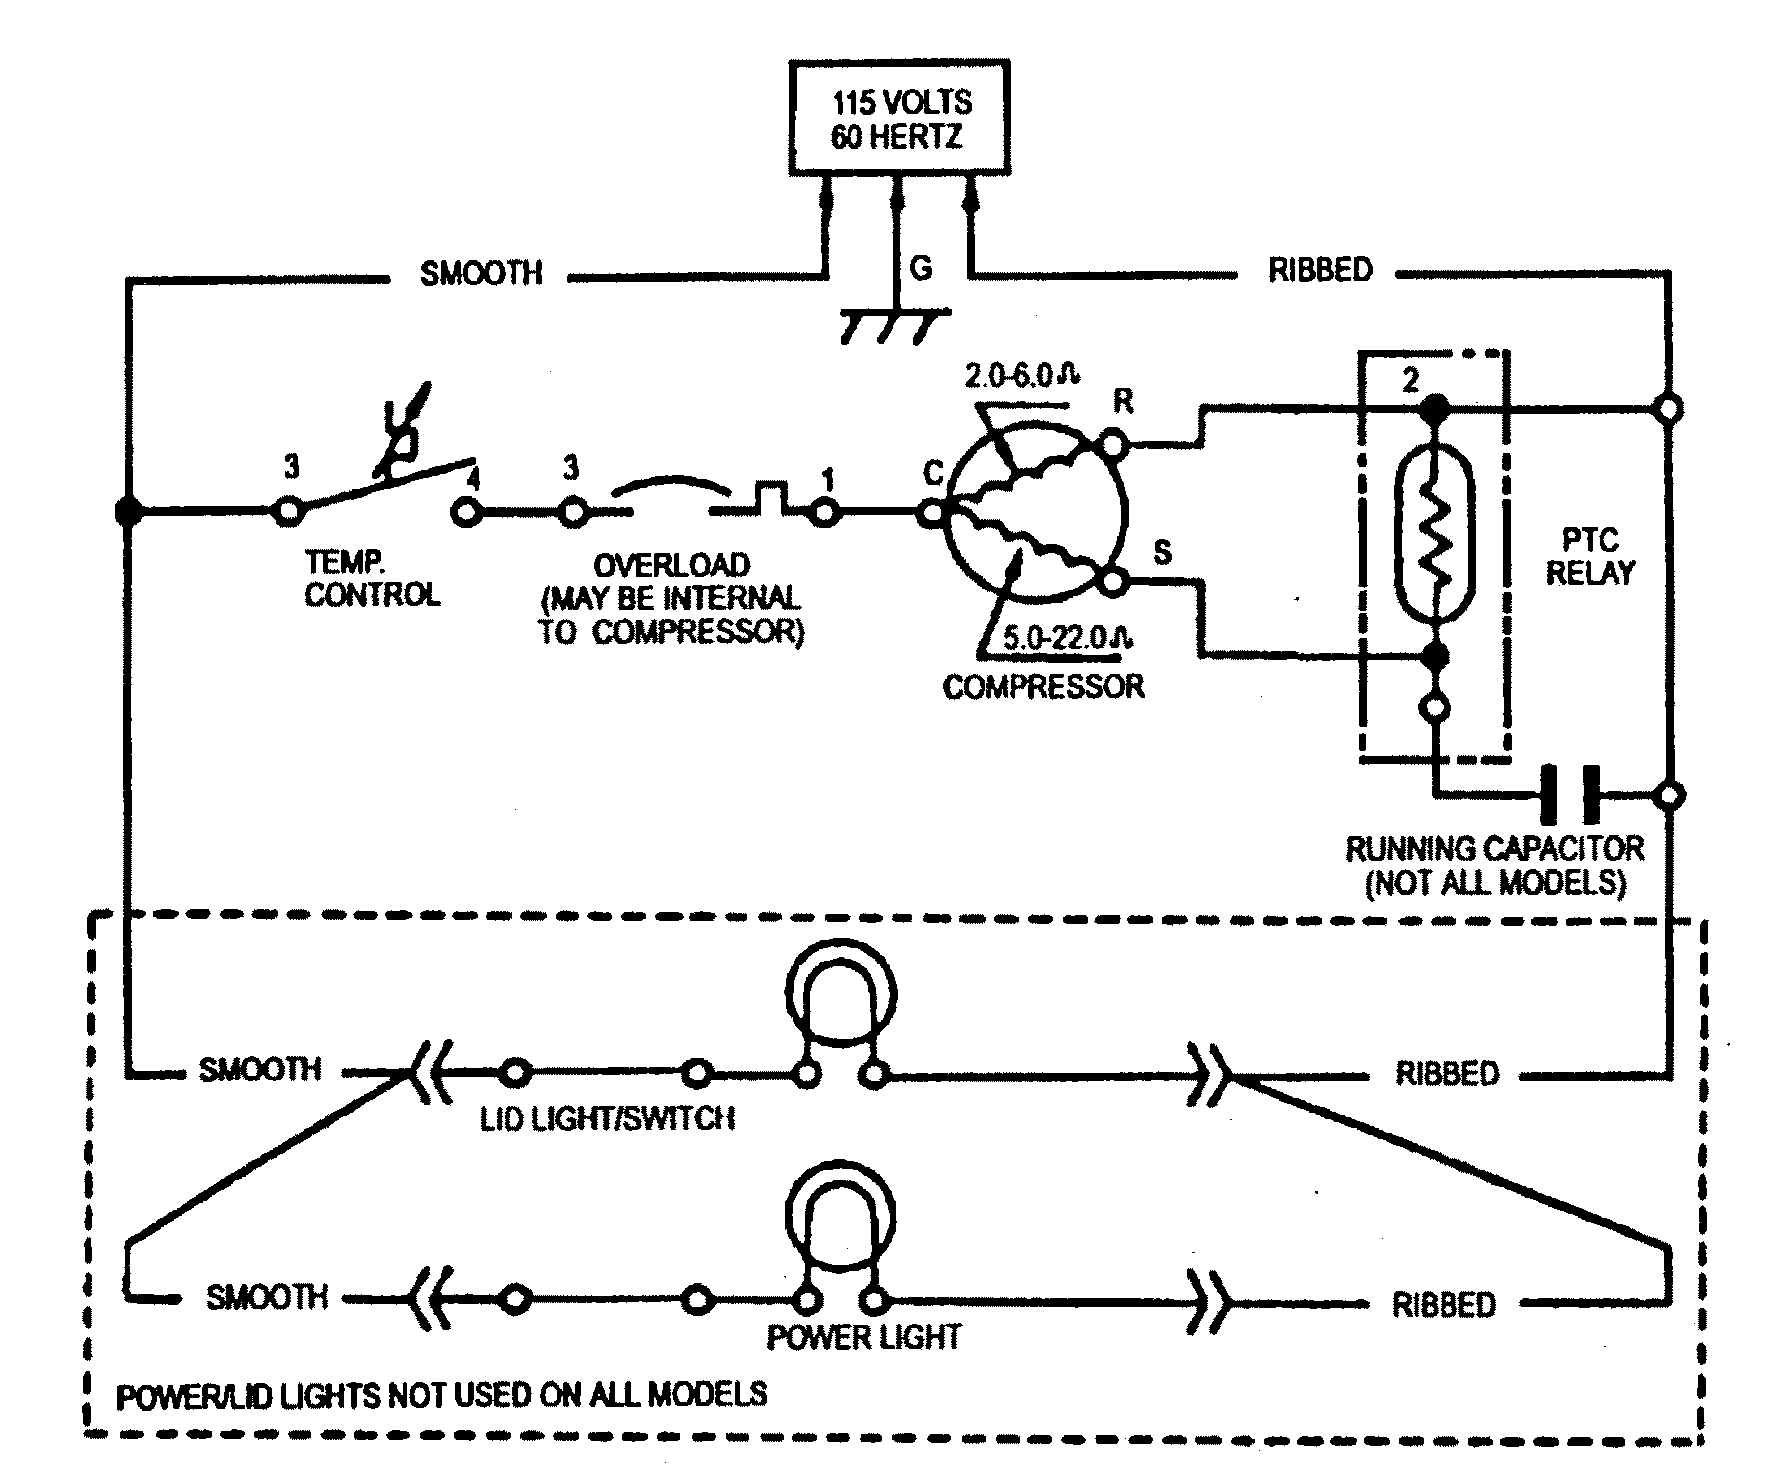 typical wiring diagram walk in cooler clarion marine stereo amana chest freezer parts model aqc1526aew sears